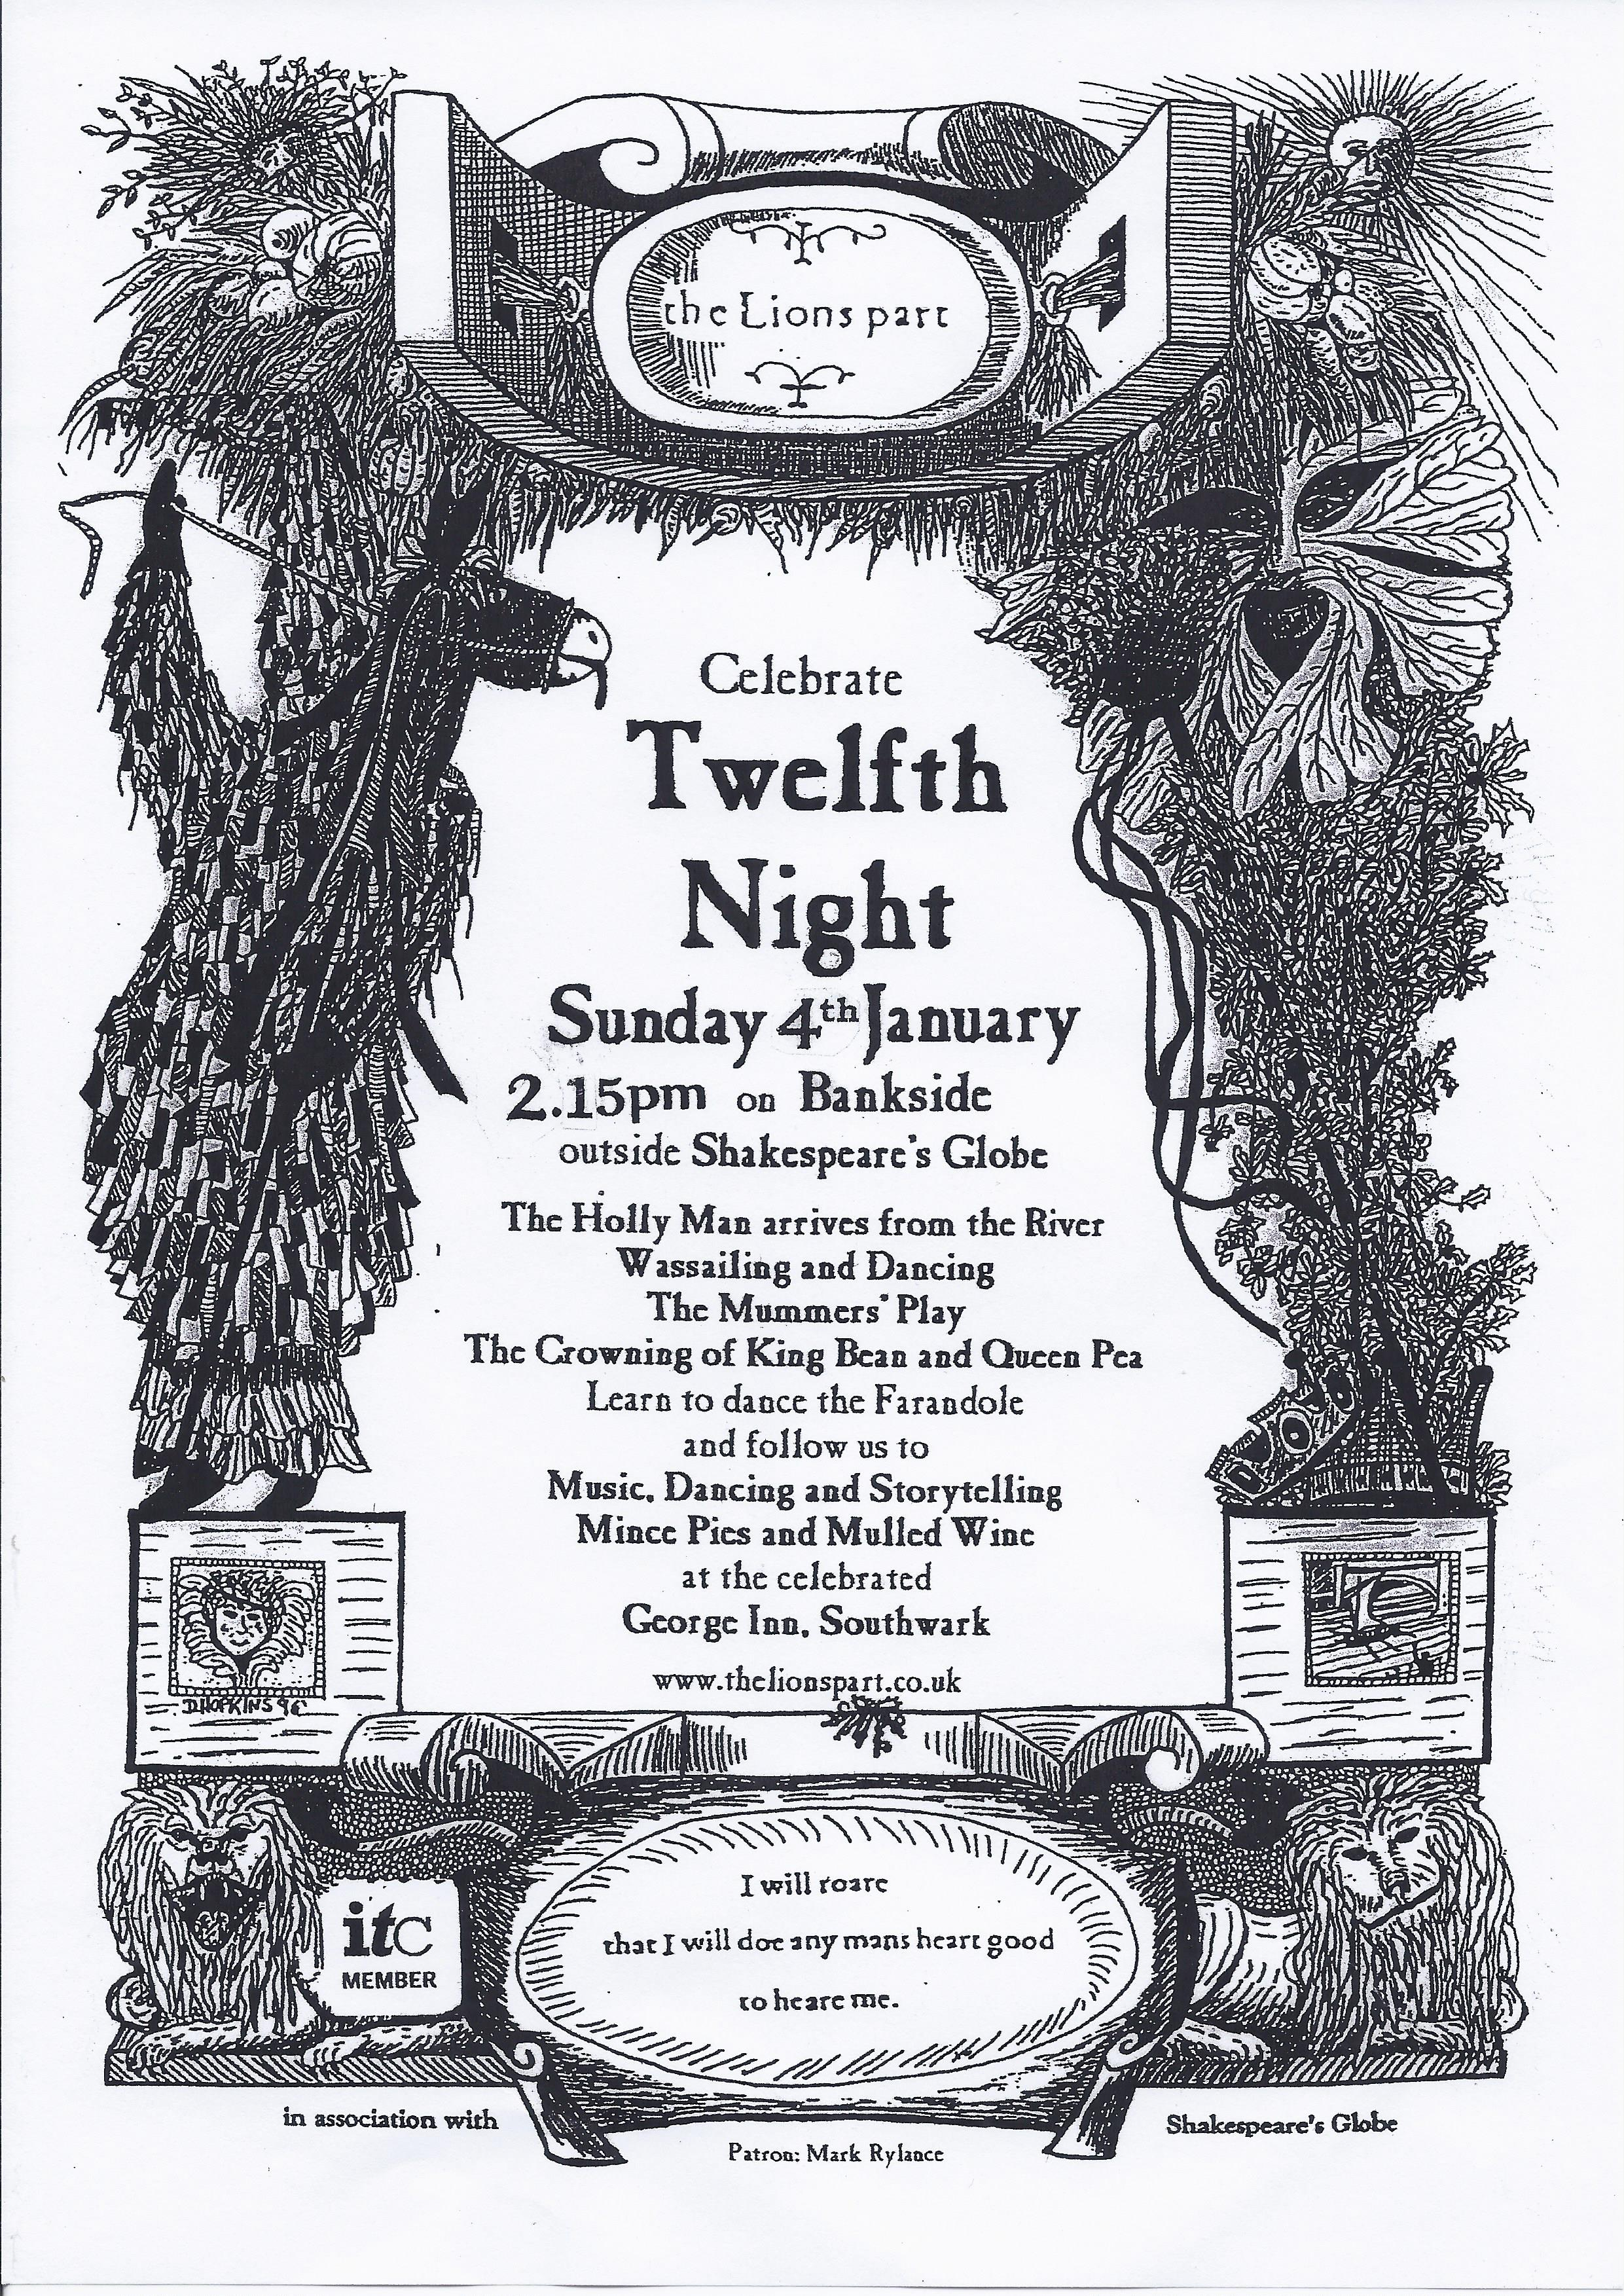 a history of the twelfth night in english tradition Twelfth night is just a day away as i write, and i am minded to share an old english recipe with you today, a recipe that will be just the ticket for a night of feasting and revelry, as well as being perfect to serenade any apple trees you may have in your garden on the 6th january, which is.